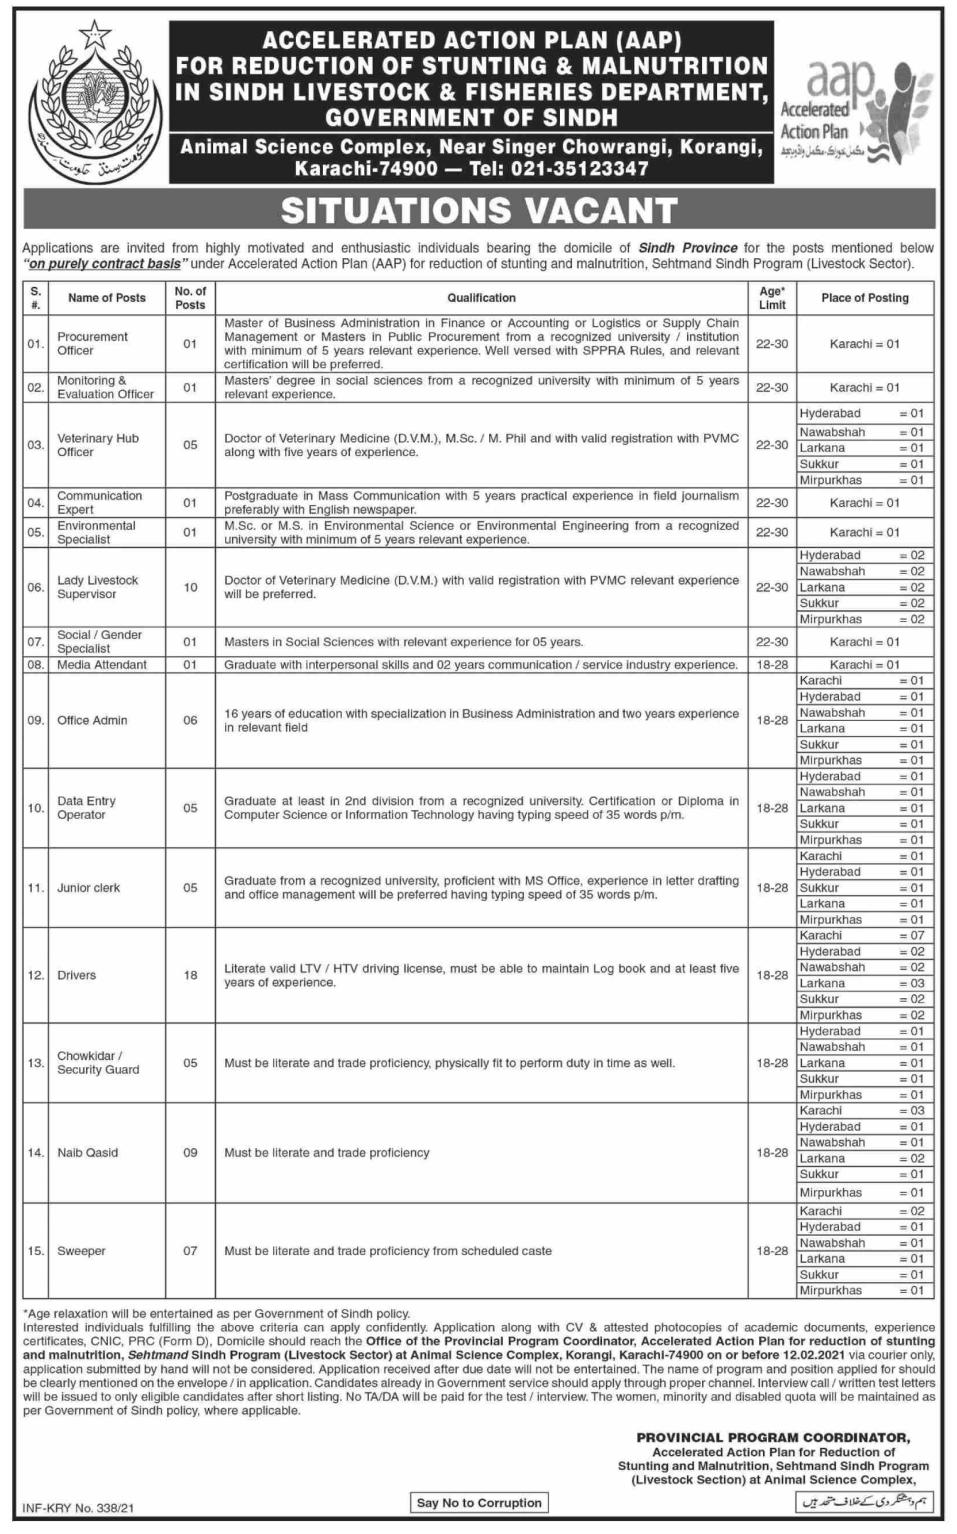 Livestock & Fisheries Department Karachi, Government of Sindh 2021 Jobs | (76 Posts) Application Form